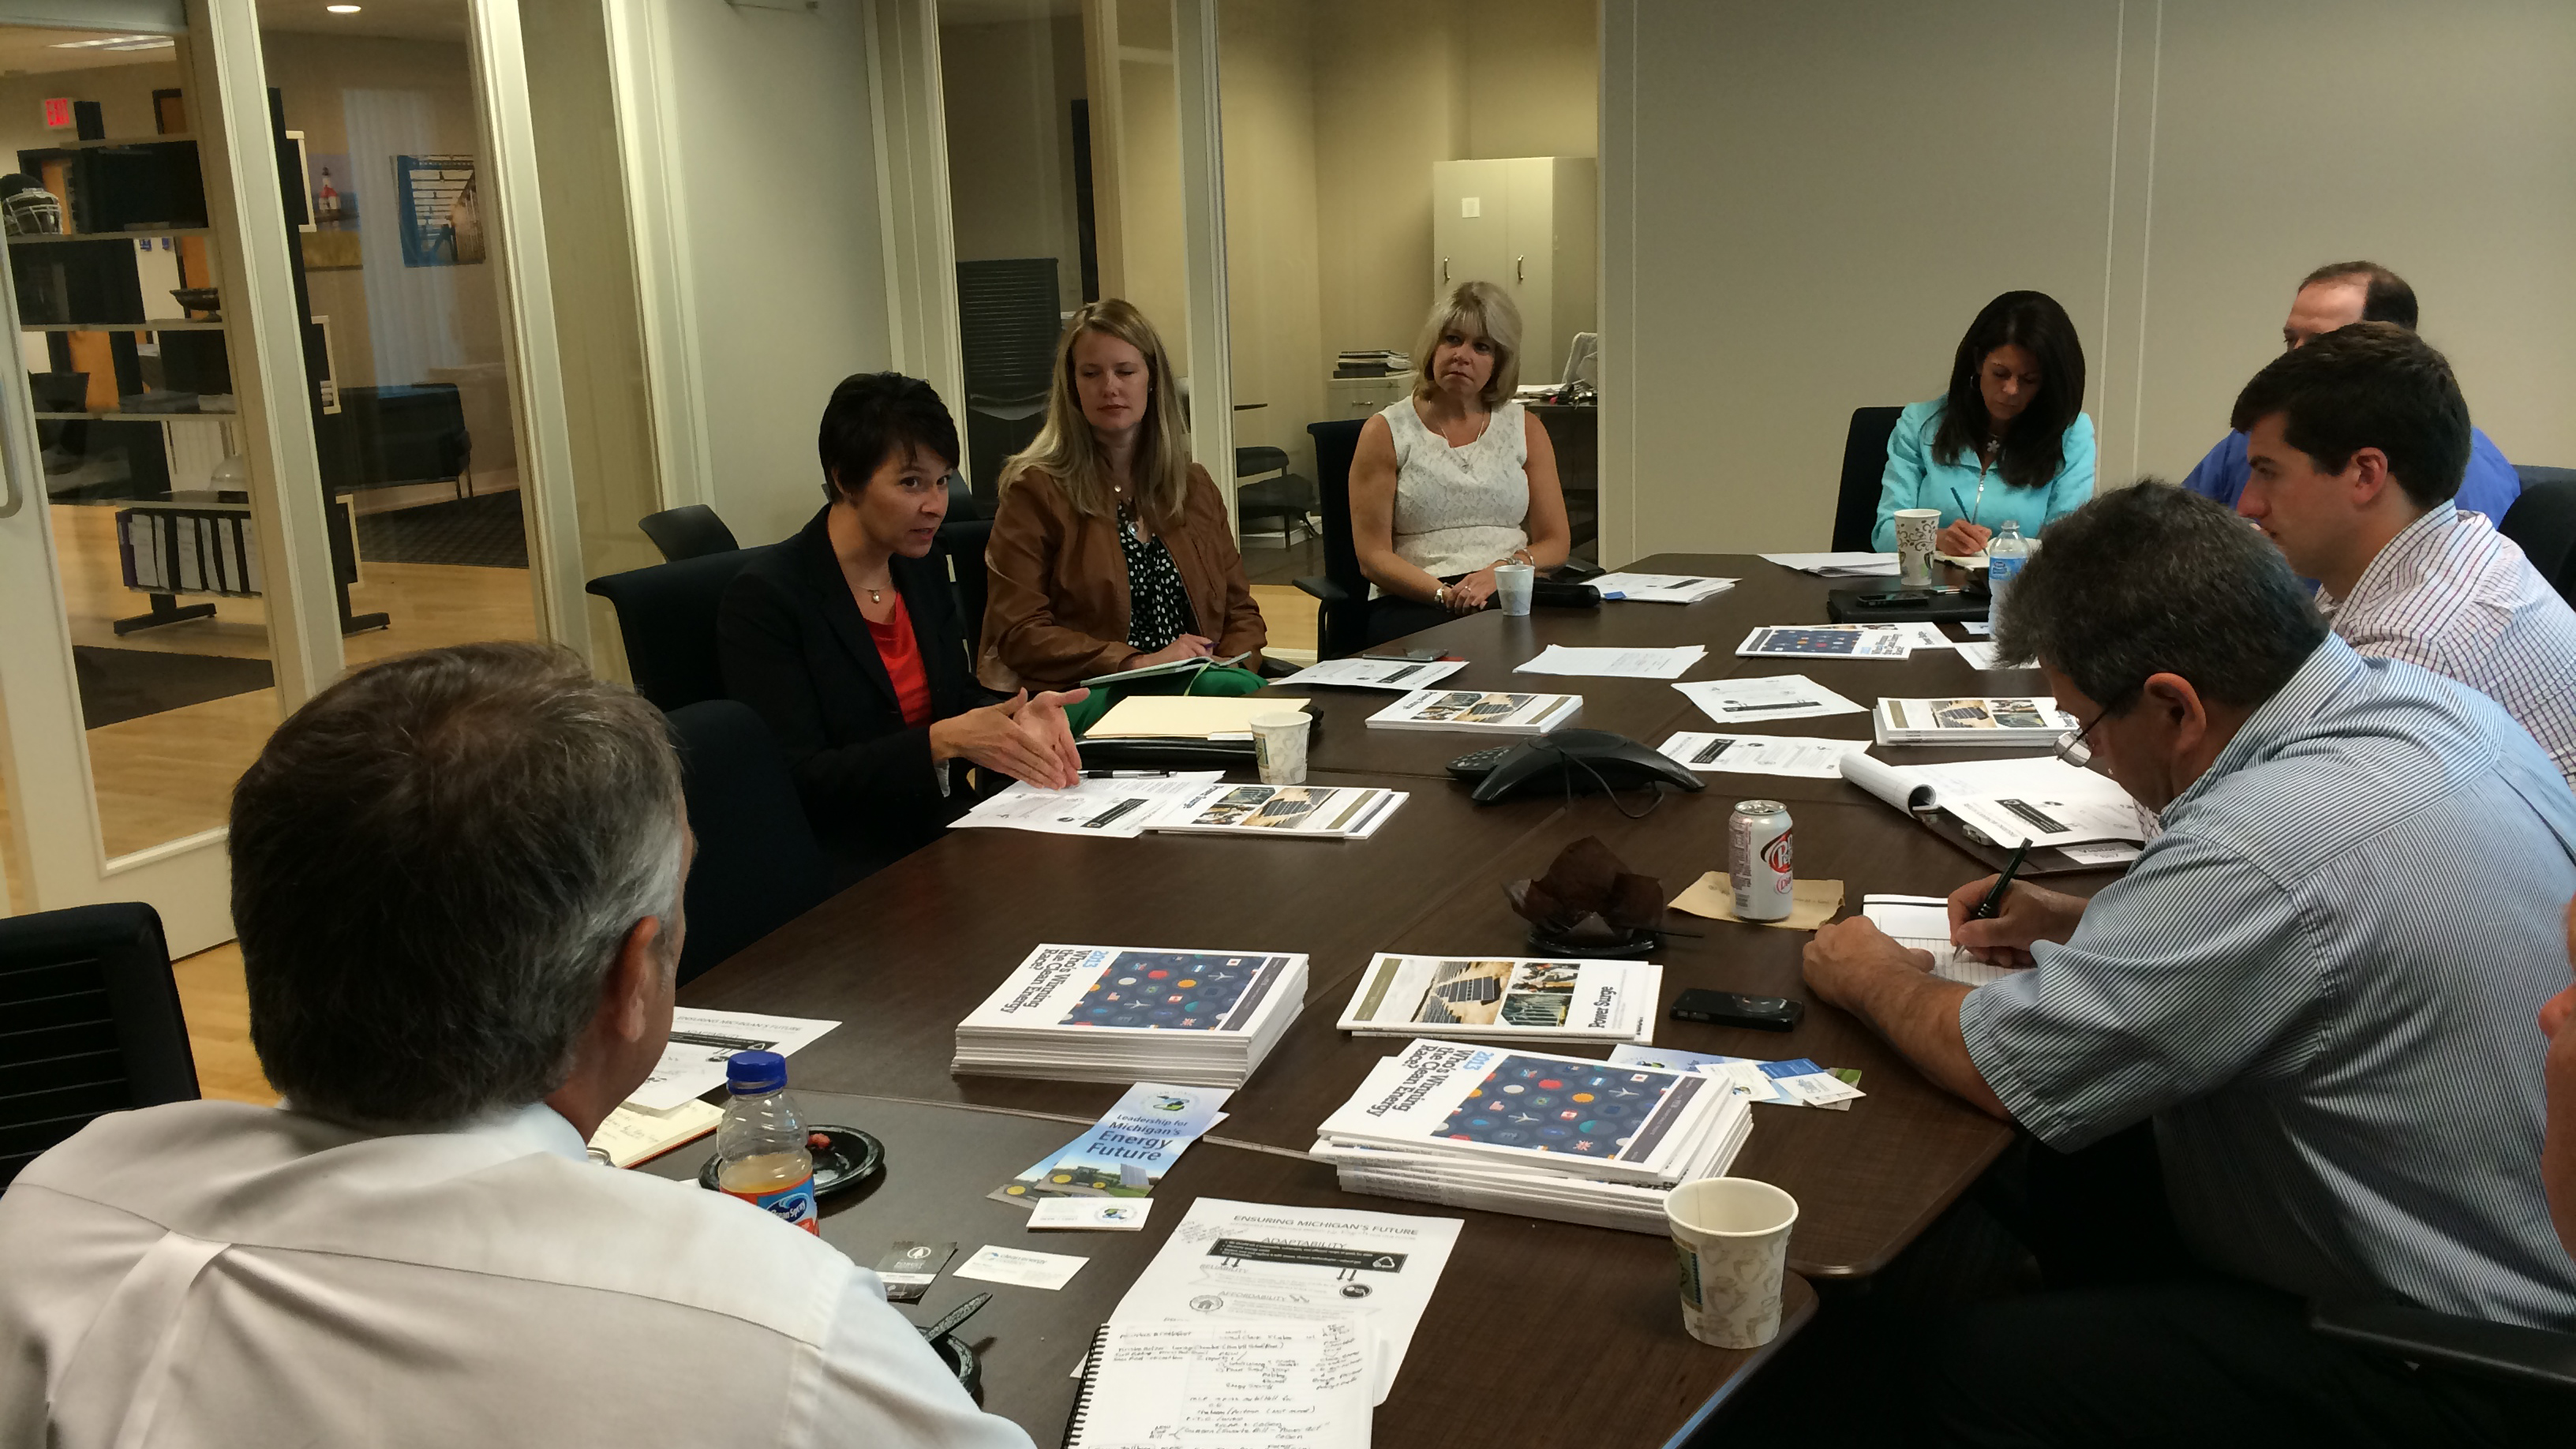 CEBN members meet with Michigan Public Service Commissioner Sally Talberg to learn about clean energy policy developments in the state (June 23, 2014).